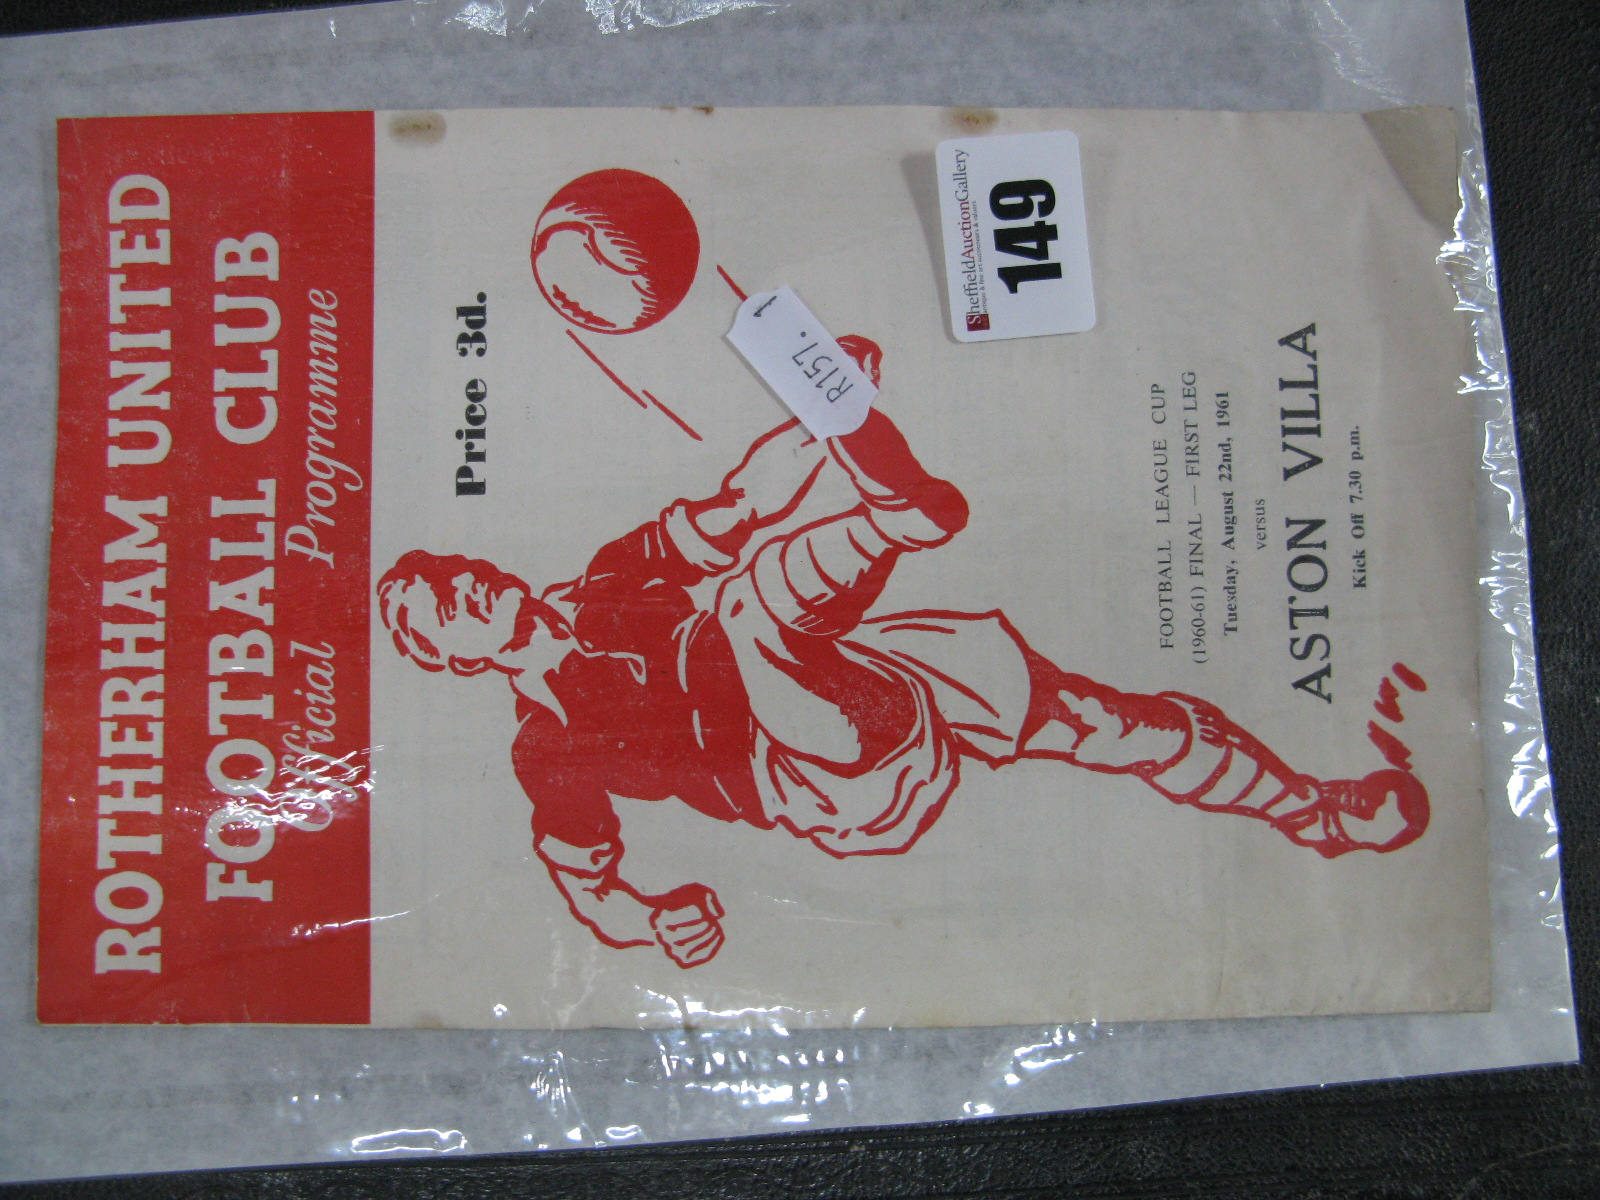 Lot 149 - 1961 League Cup Final Programme Rotherham United v. Aston Villa, dates August 22nd, 1961 (rusty